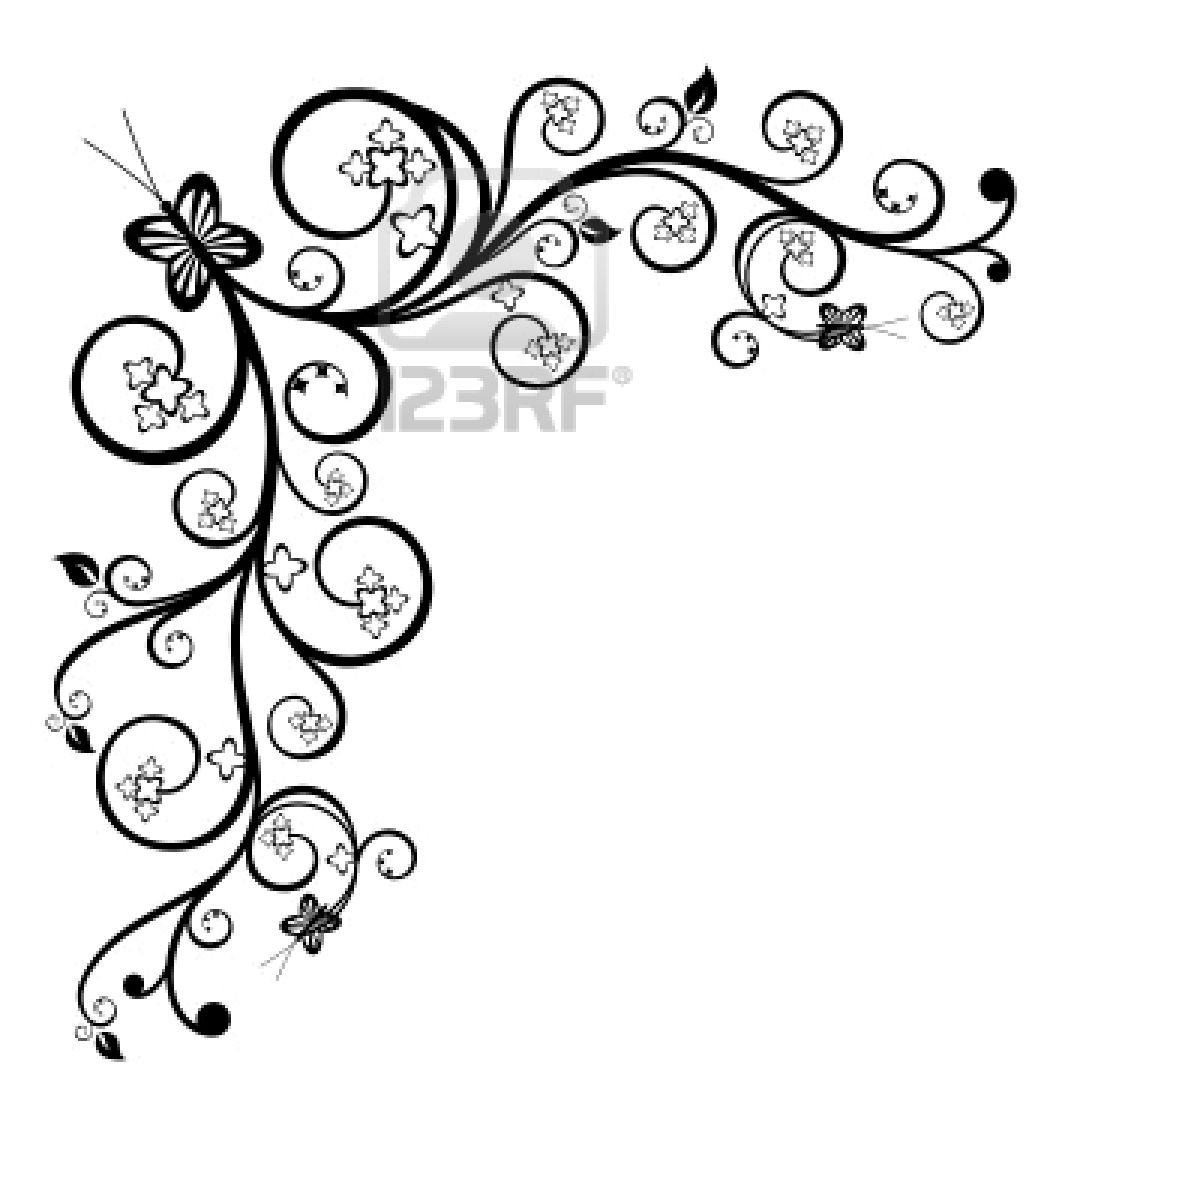 Elephant clipart corner borders black and white